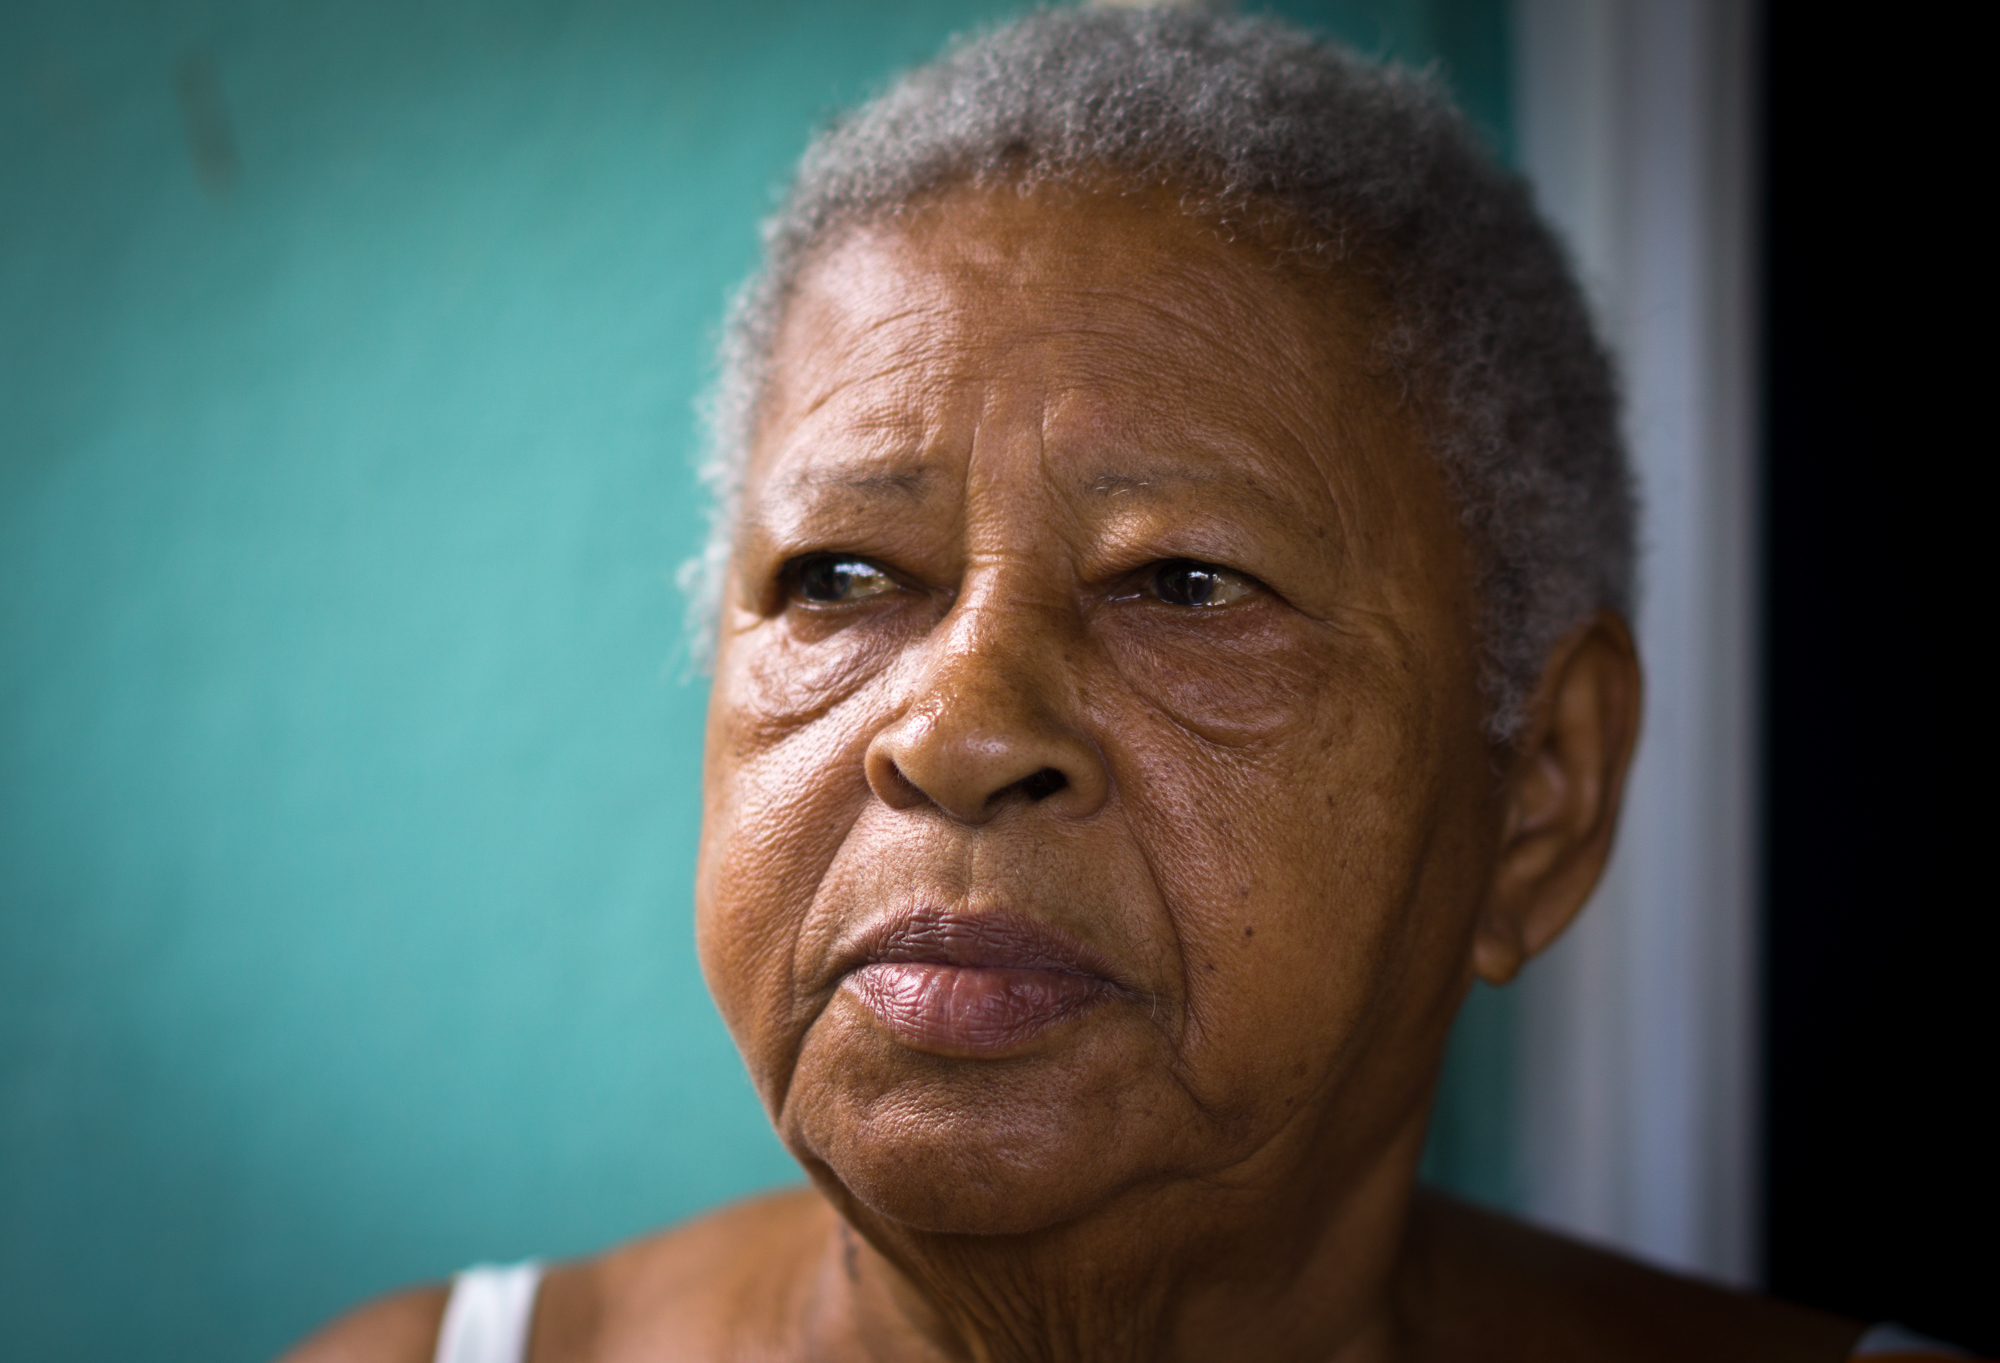 Rafaela Pizarro Parrilla, 82, suffers from diabetes, was admitted to the hospital after the storm because of low blood sugar. Her daughter and caretaker, Maria, is concerned about the lack for electricity in Playita and is considering moving Rafaela to the mainland. (Angel Valentin for NPR)